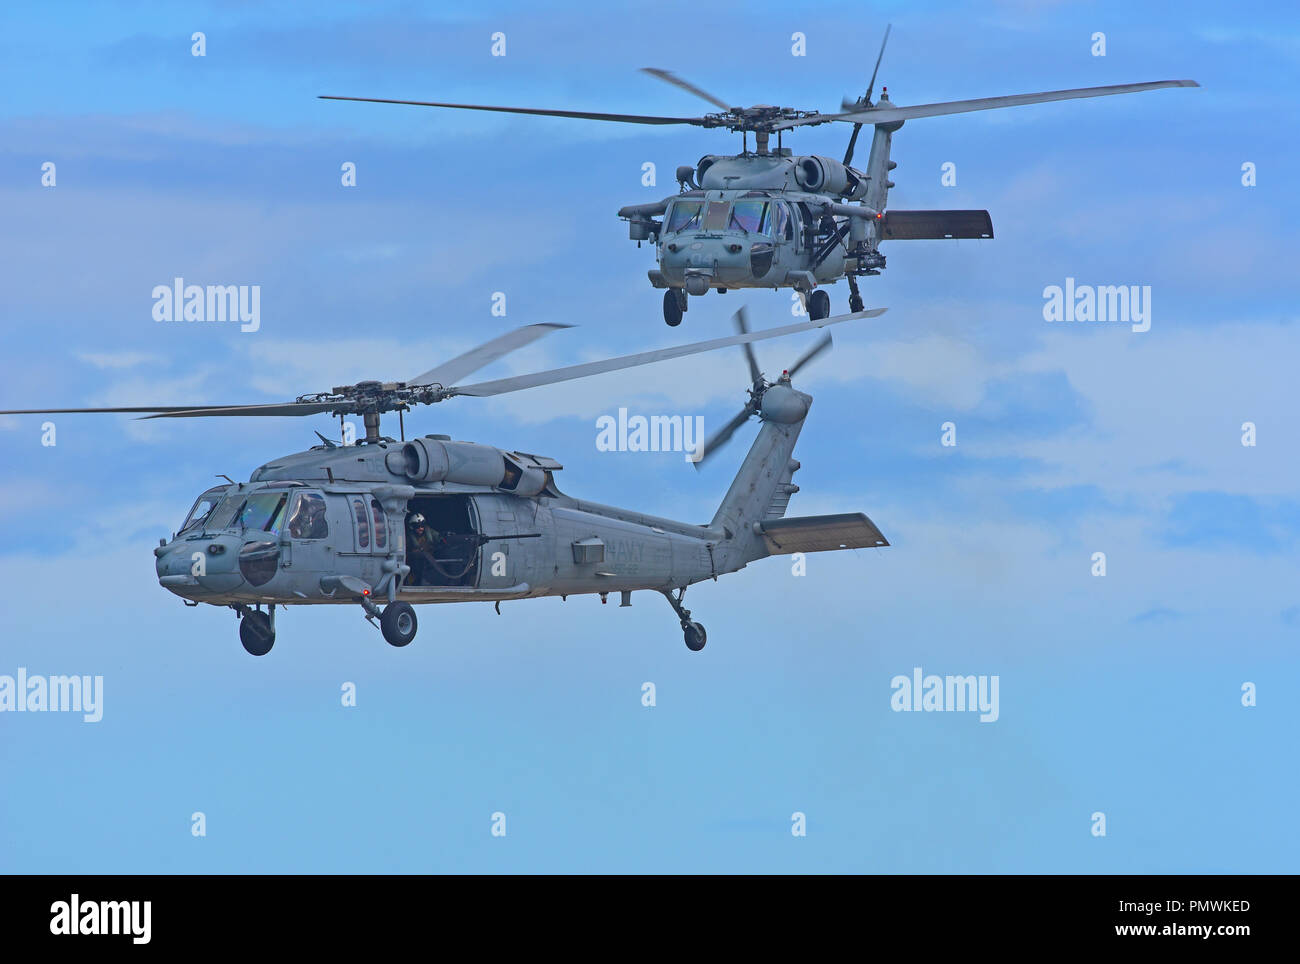 USNAVY MH-60 Seahawk helicopter on gunnery training exercise at Tain range, flying out from the RAF base at Lossiemouth in Moray, Scotland. - Stock Image